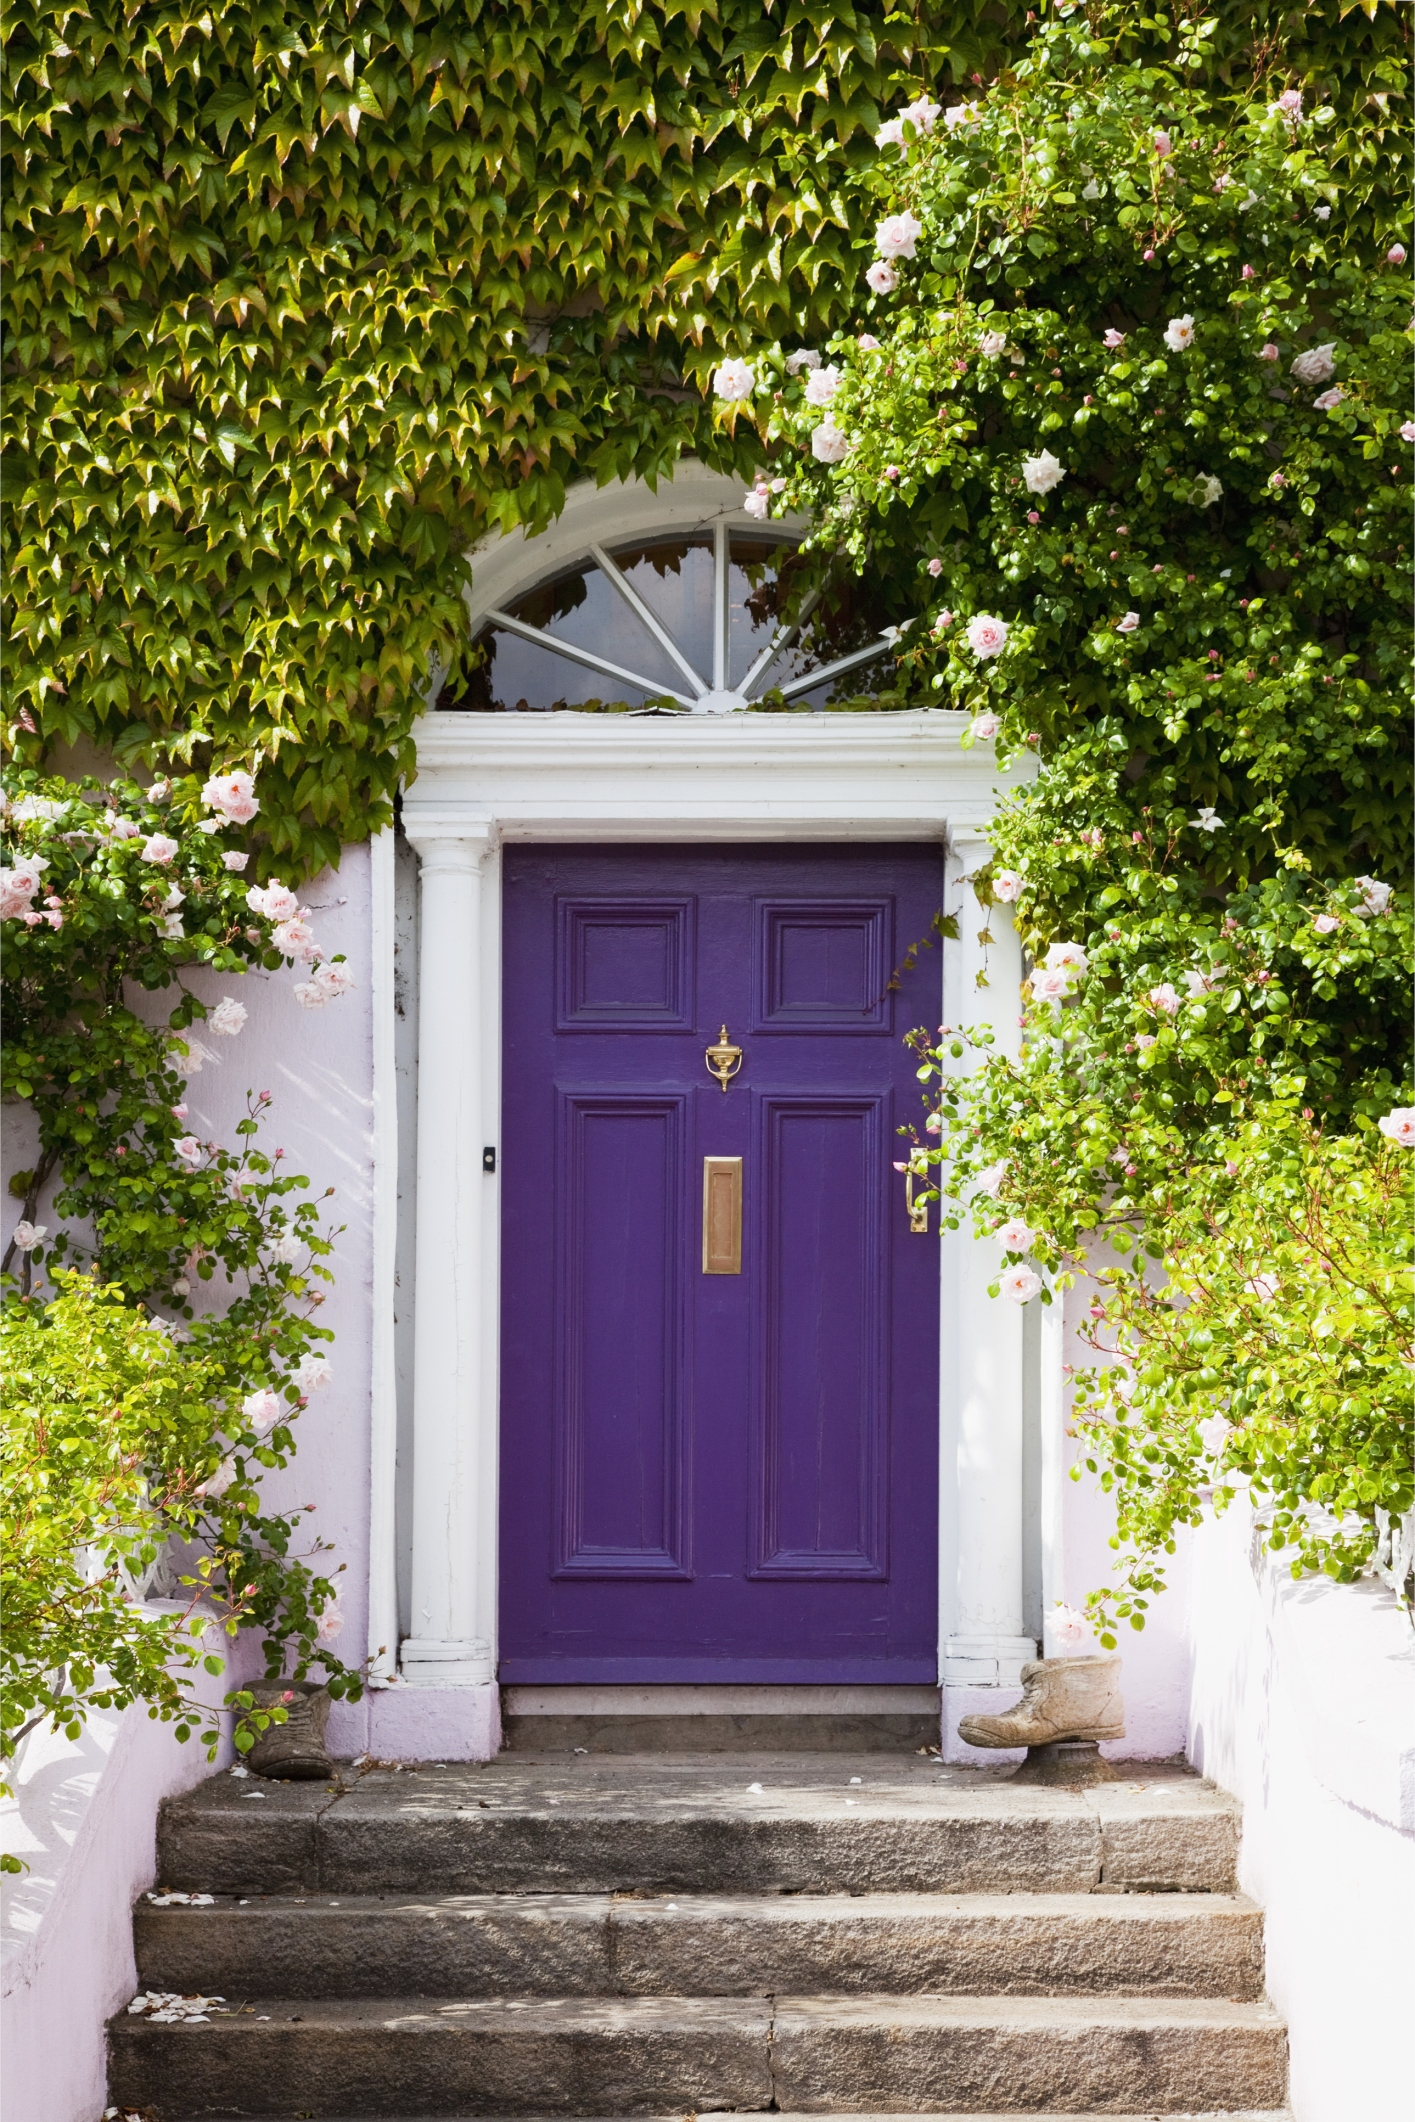 2122 #4E5D0E Colorful Front Doors Curb Appeal Ideas wallpaper Purple Front Doors 47051415